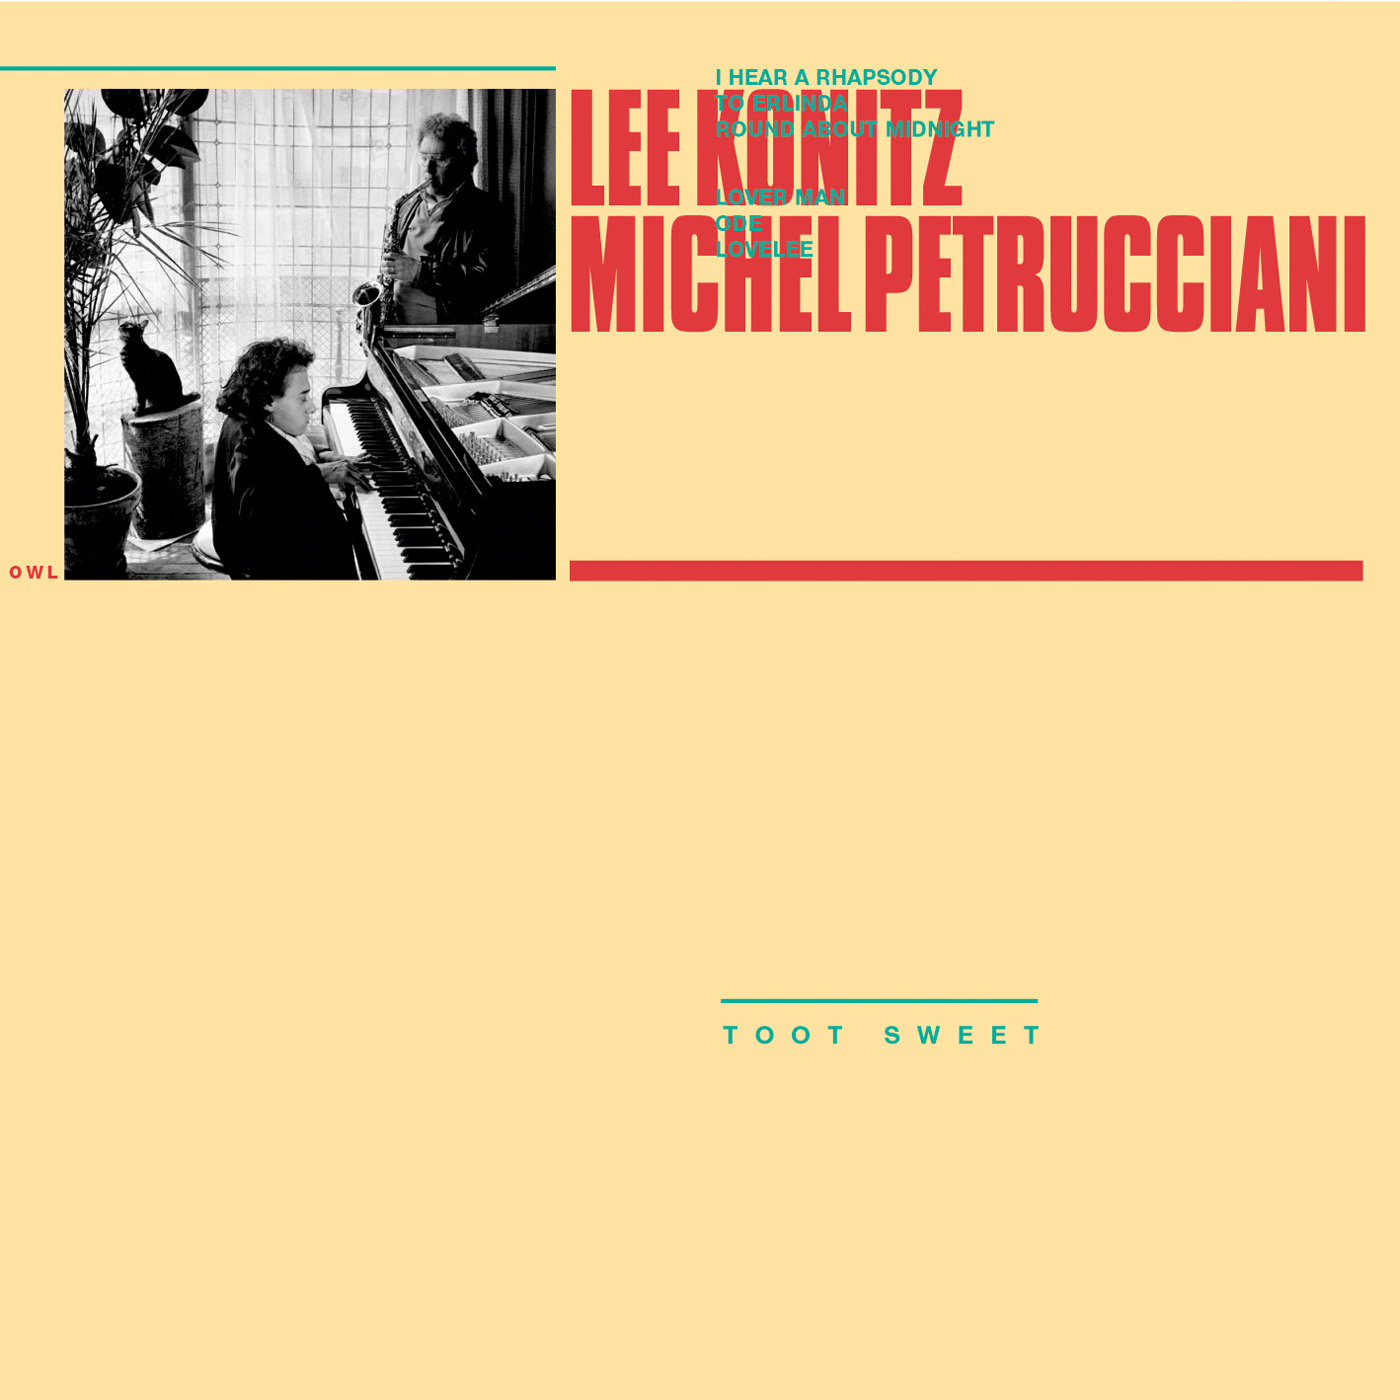 Toot Sweet by Lee Konitz & Michel Petrucciani cover